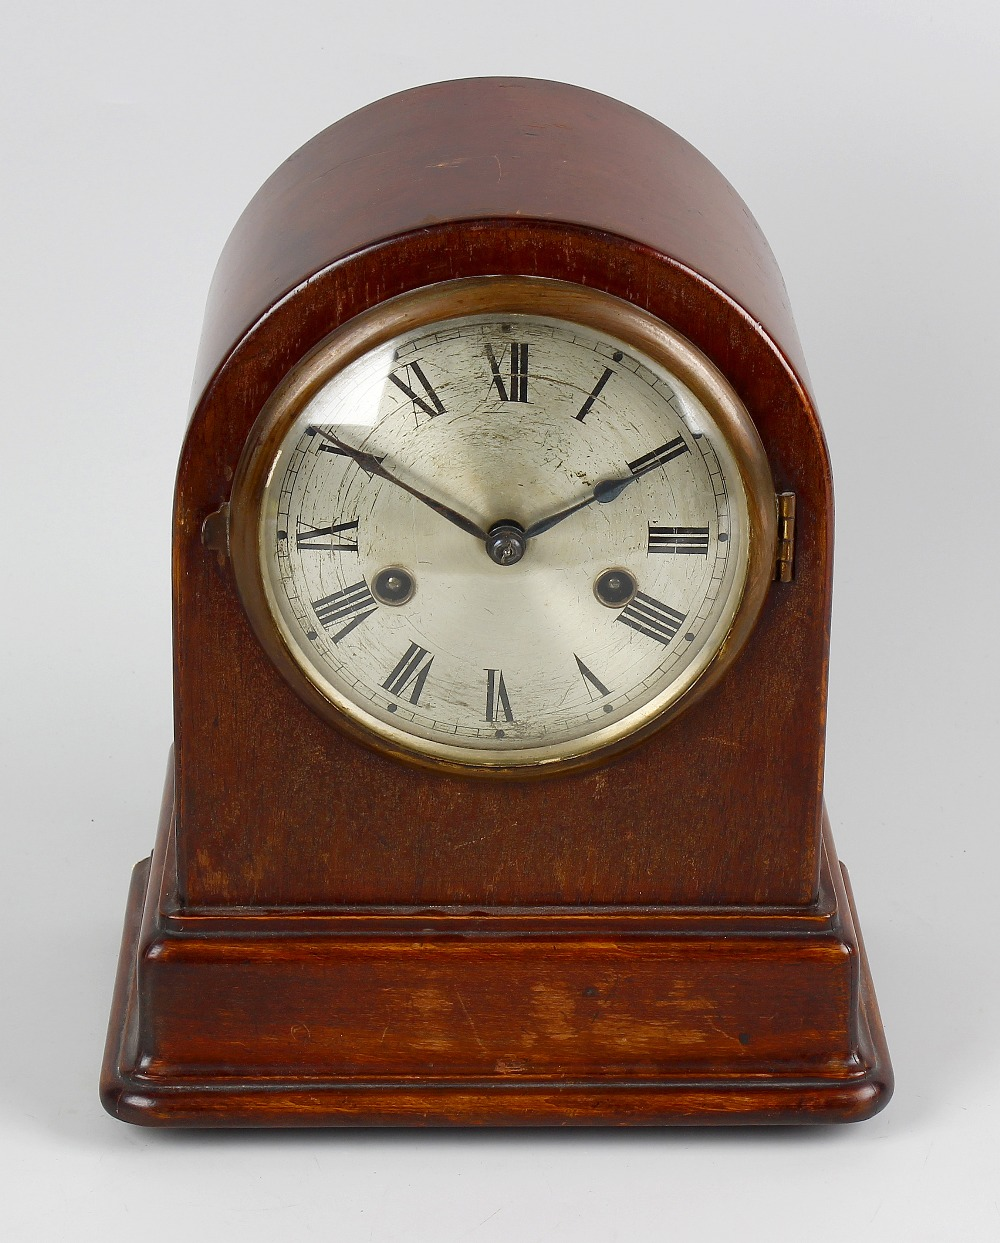 Lot 781 - Two early 20th century mantel clocks. Comprising a mahogany example by Gustav Becker with 5 silvered